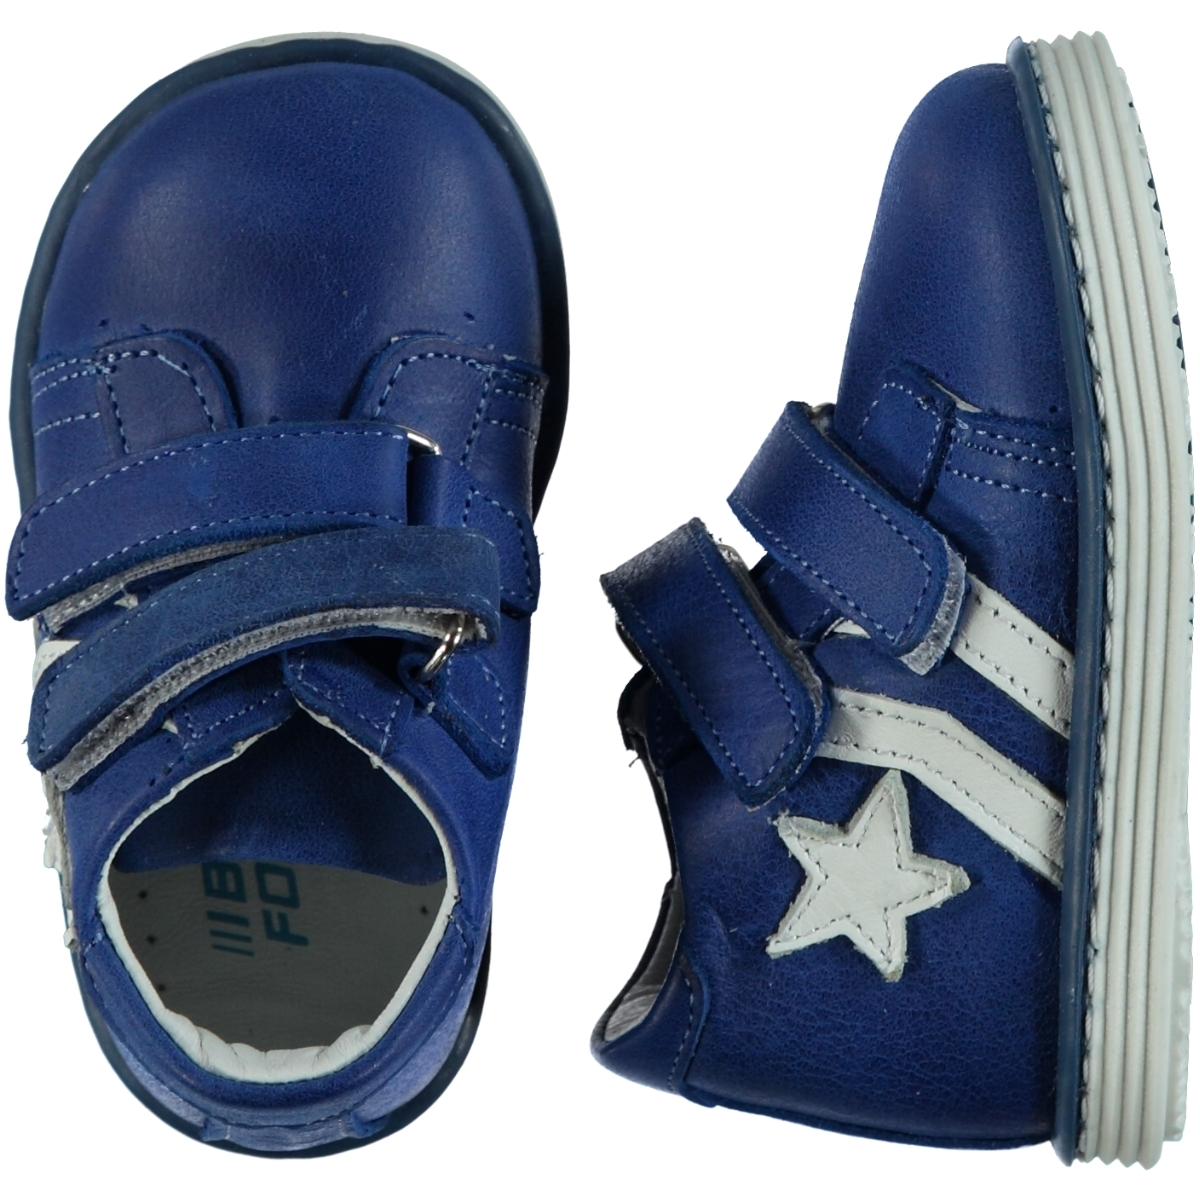 Baby Force The First Step Is To Number The Shoe 19-23 Saks Blue